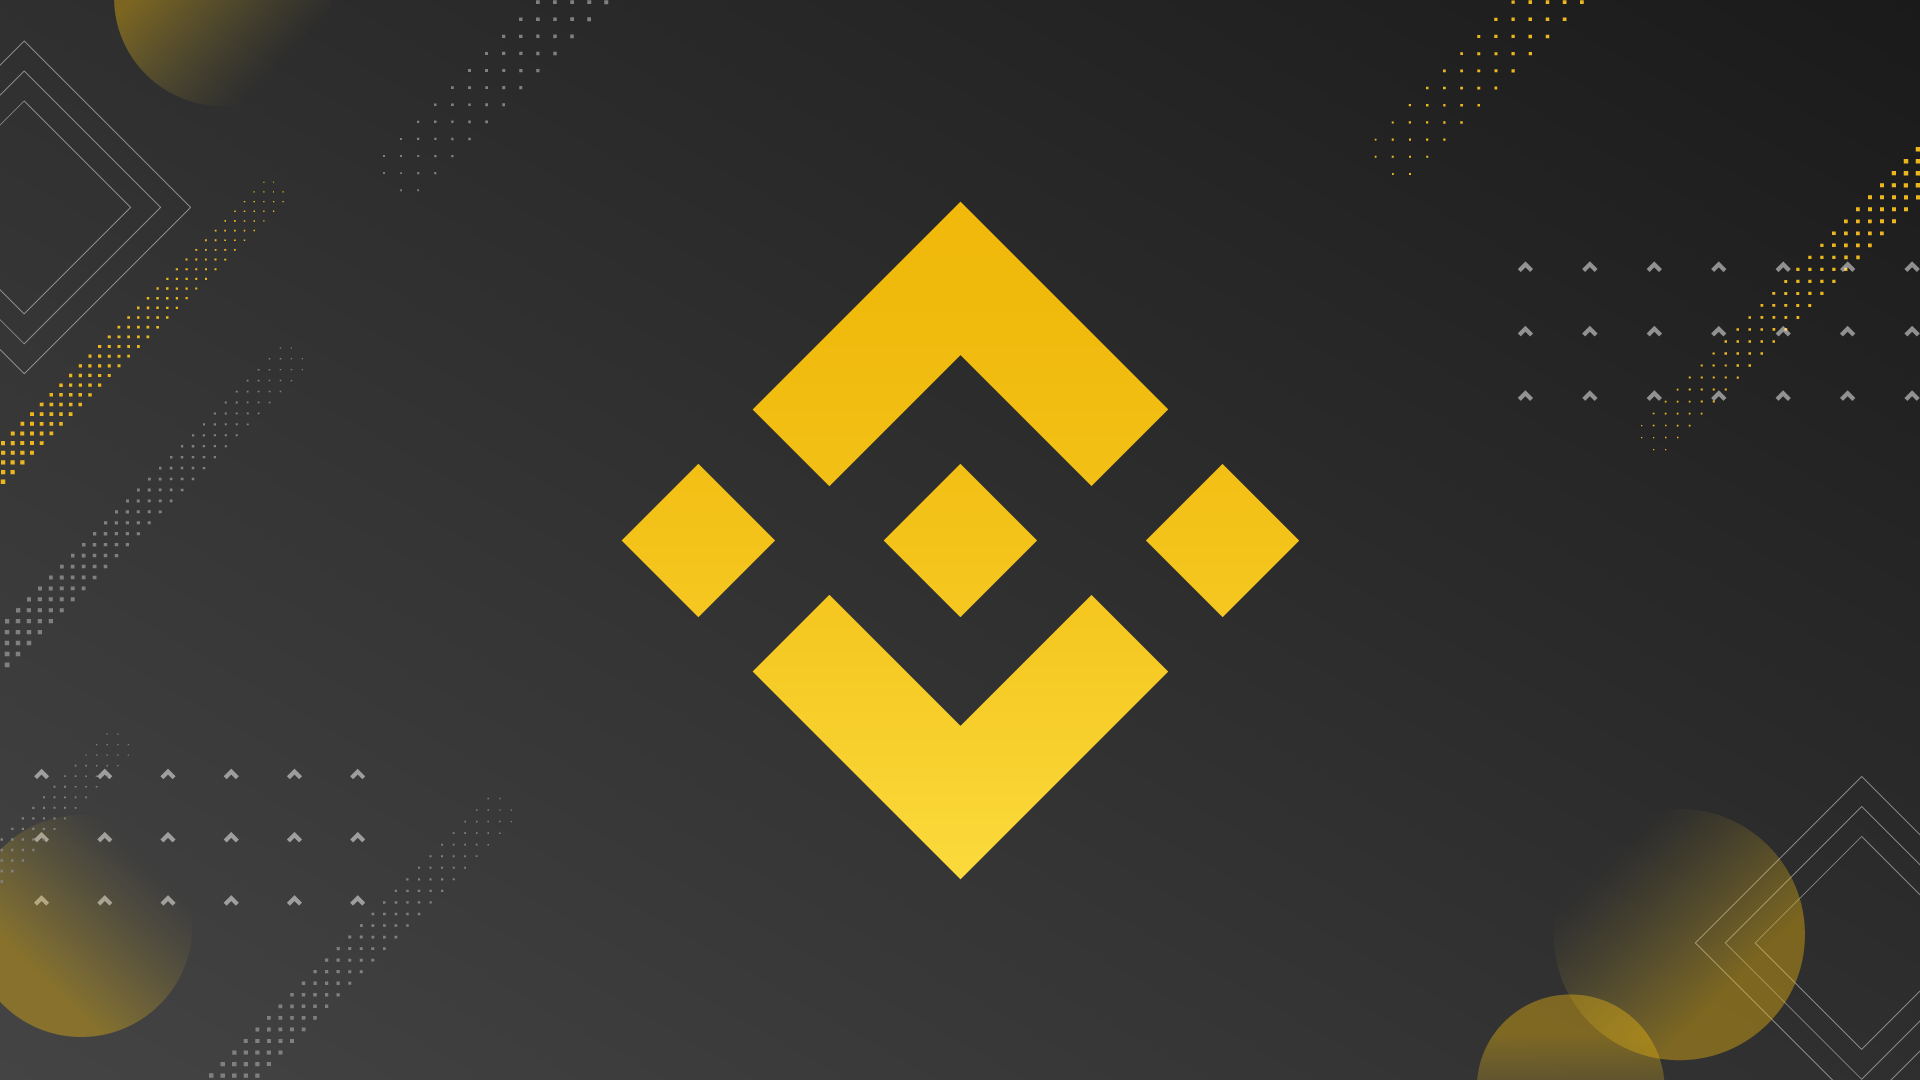 download Get Your Official Binance Wallpapers and Images Here 1920x1080